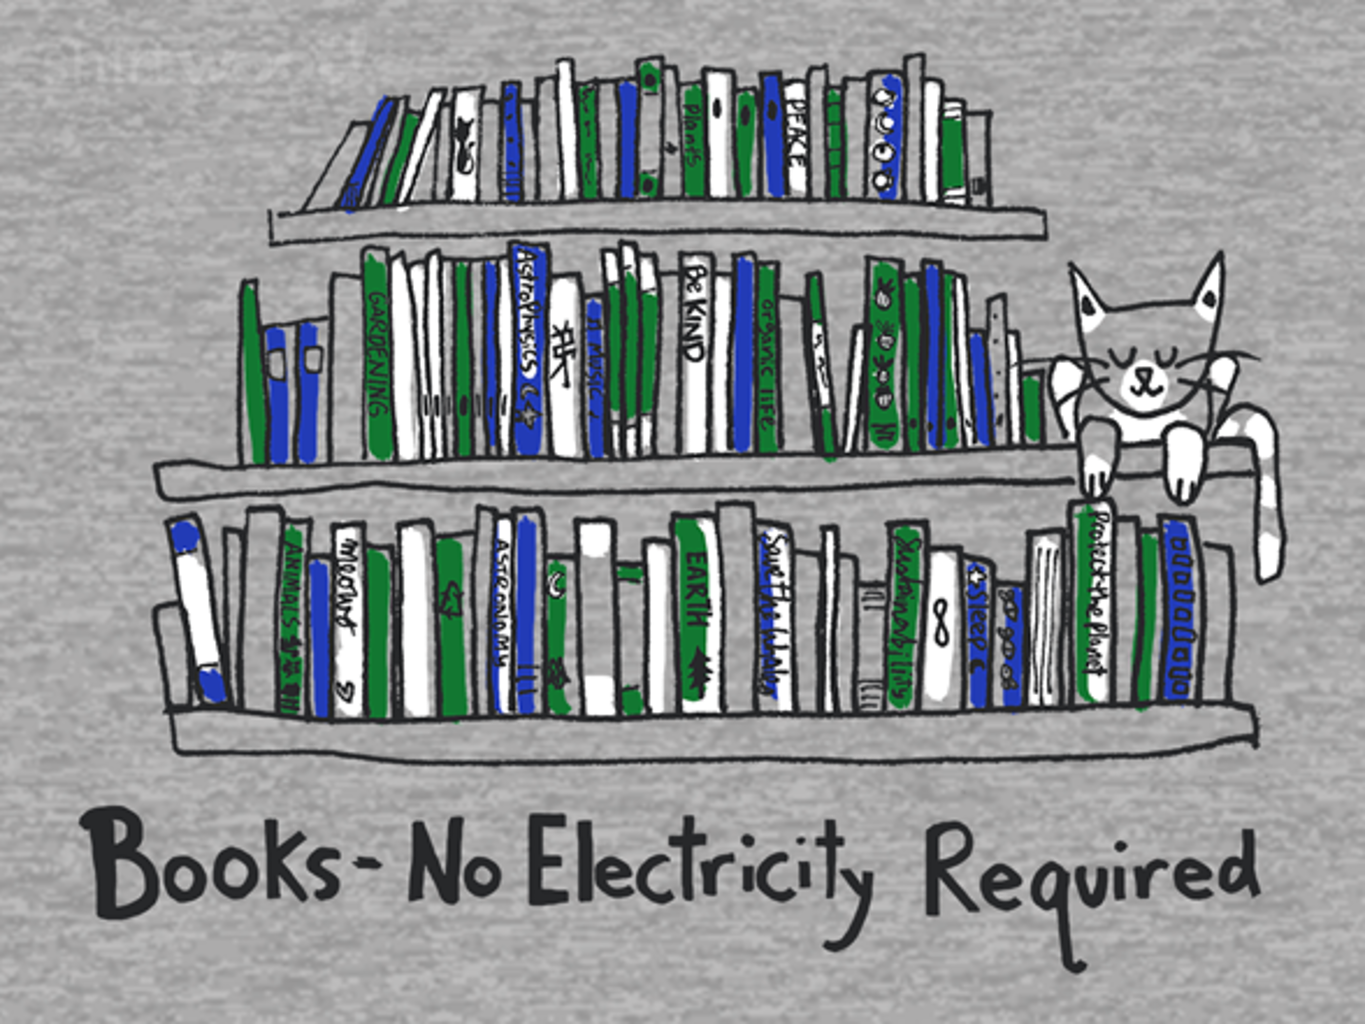 Woot!: Books and Cats - No Electricity Required